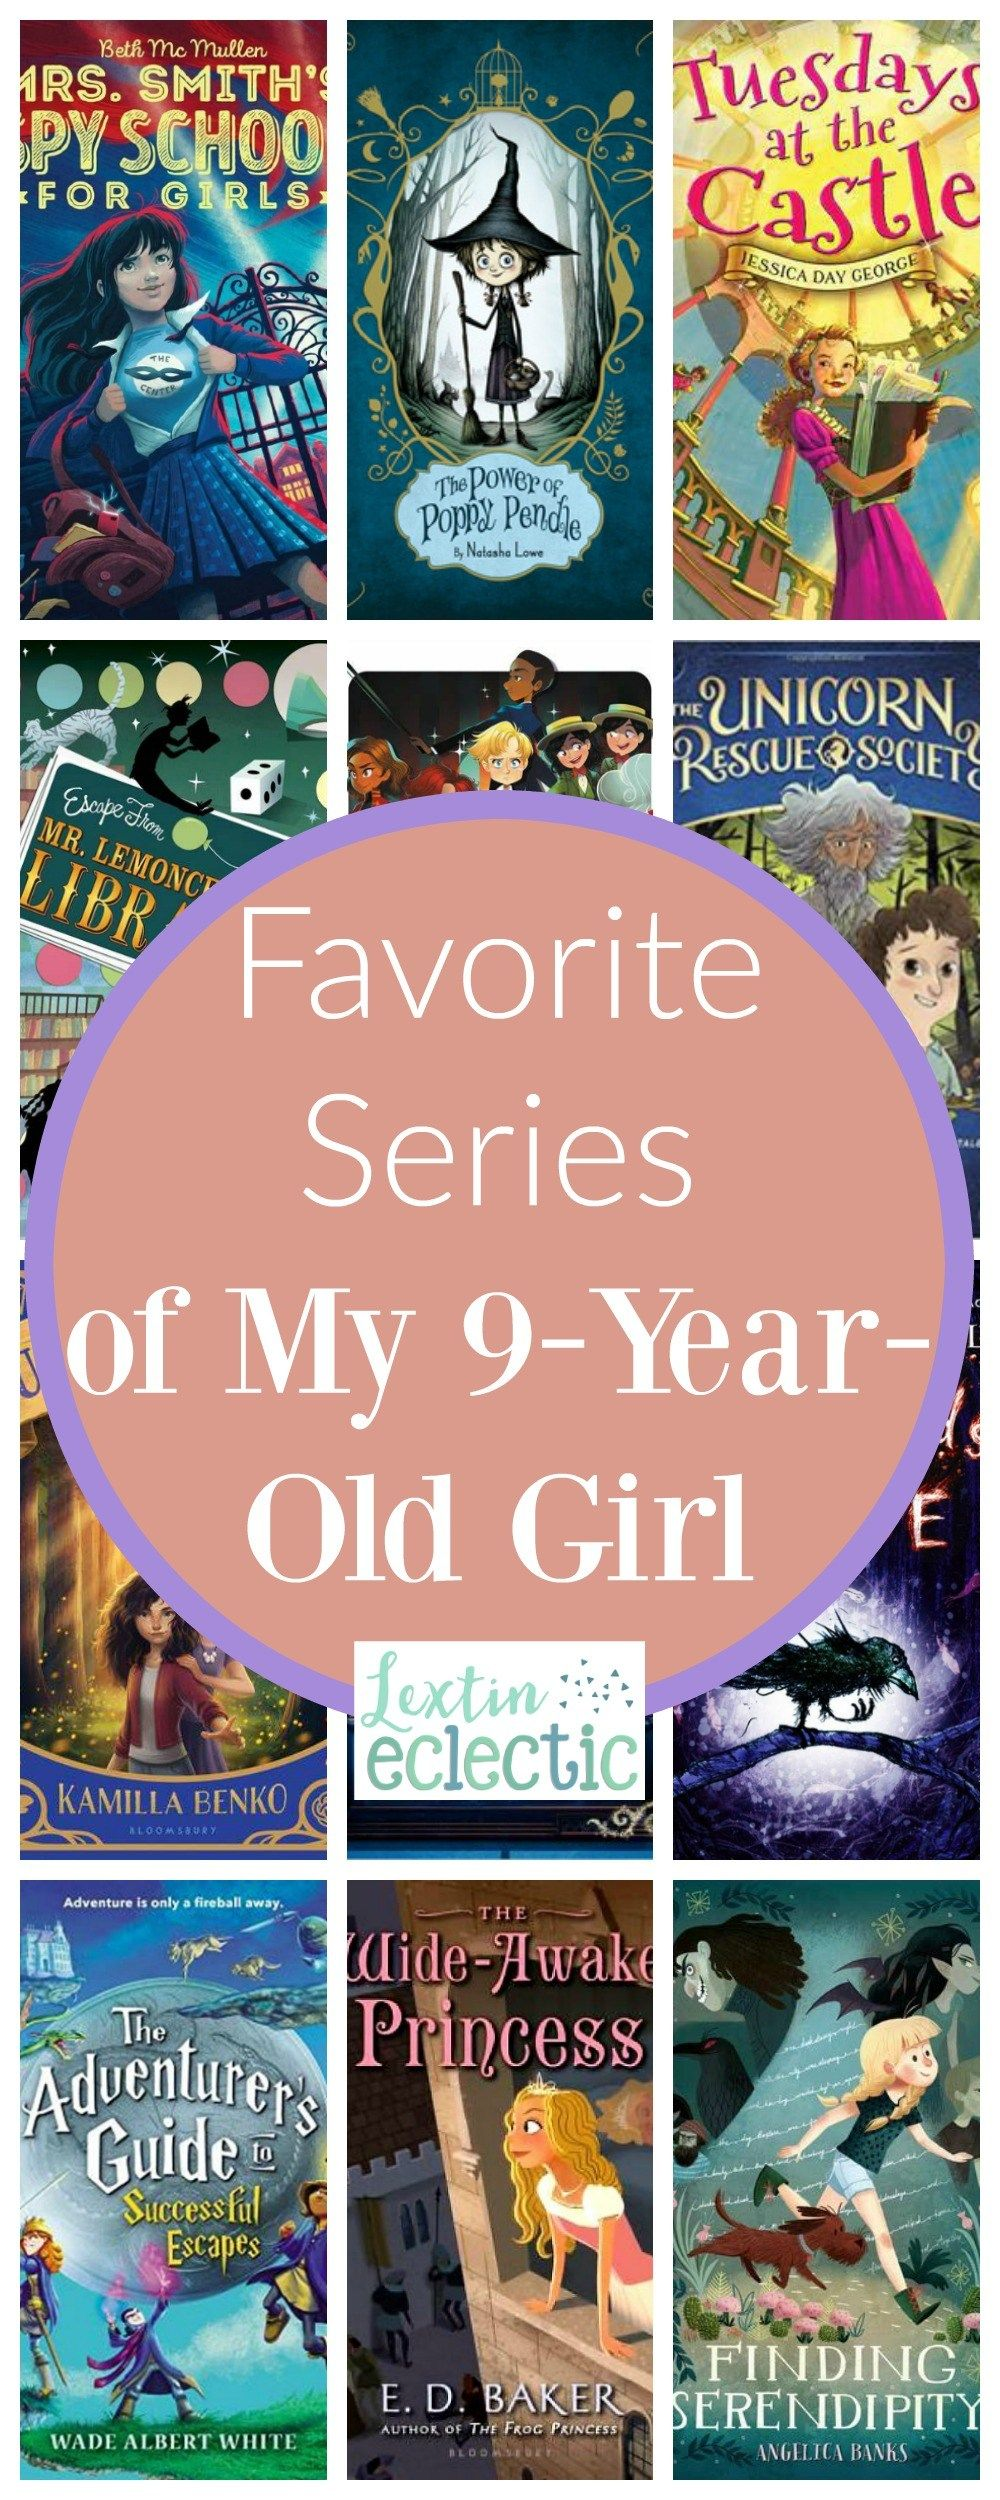 Favorite Series Of My 9 Year Old Girl Lextin Eclectic 9 Year Old Girl Chapter Books 9 Year Olds What should my year old be reading